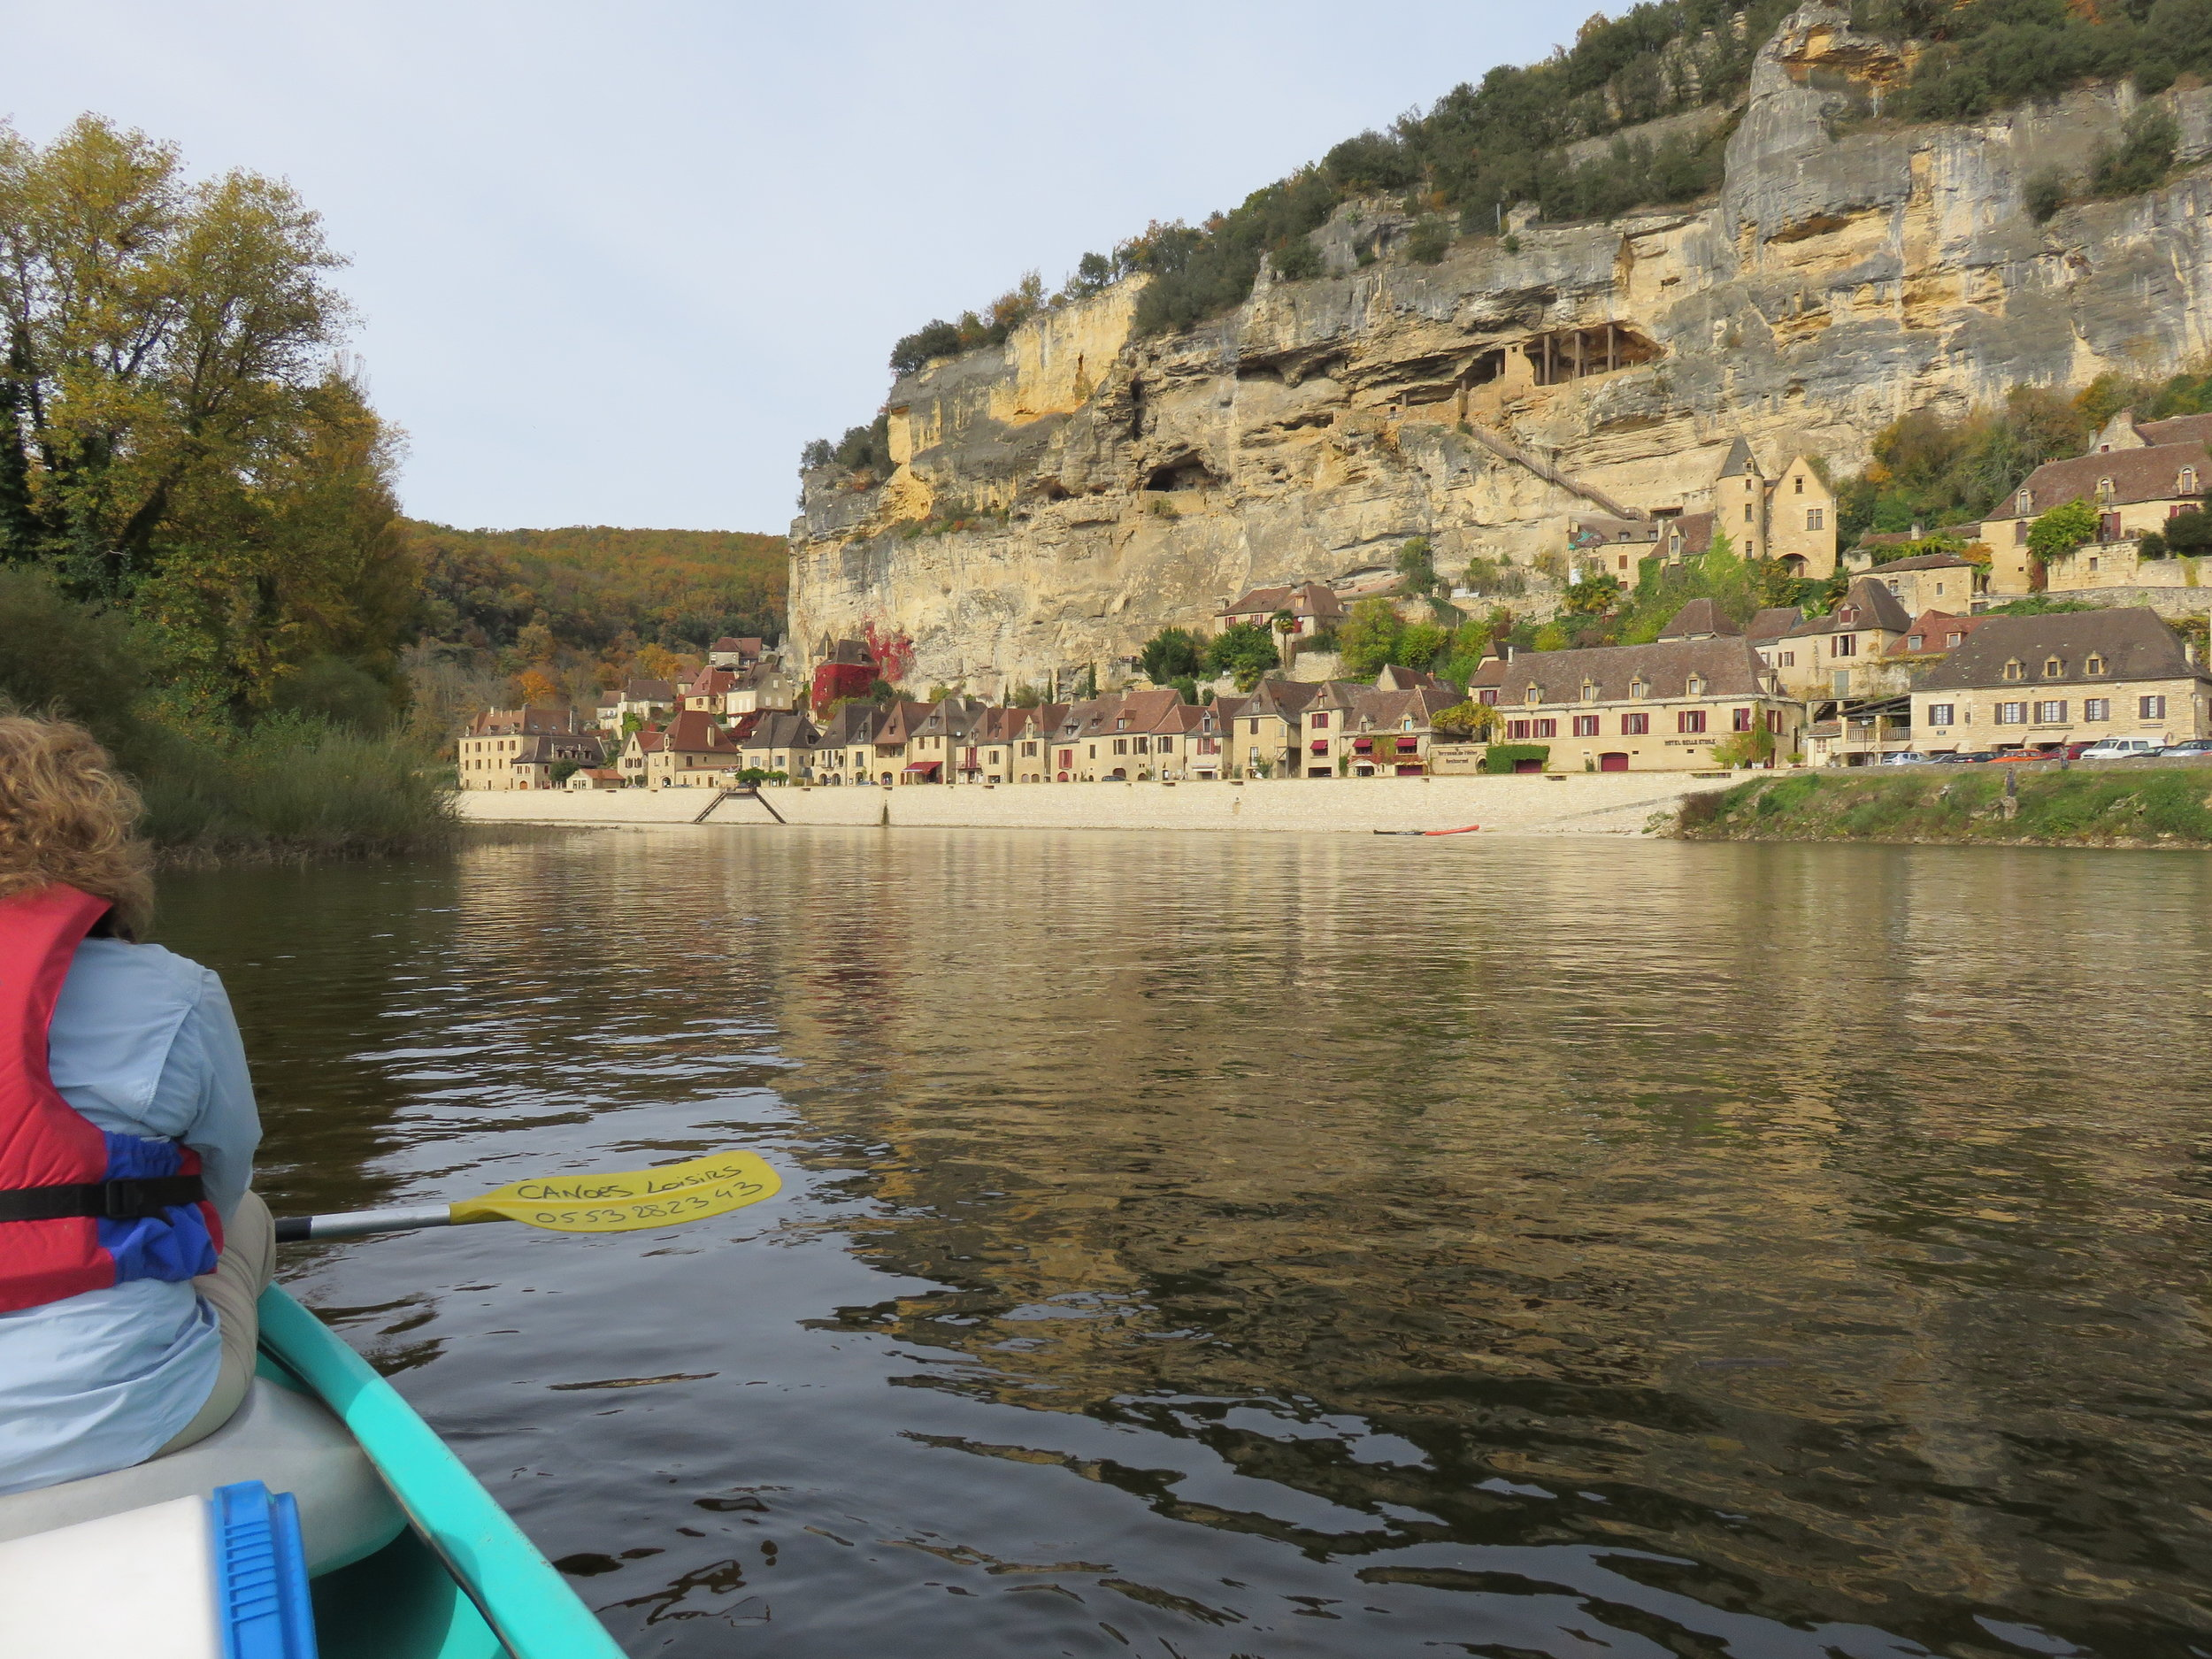 And canoeing down on the river.